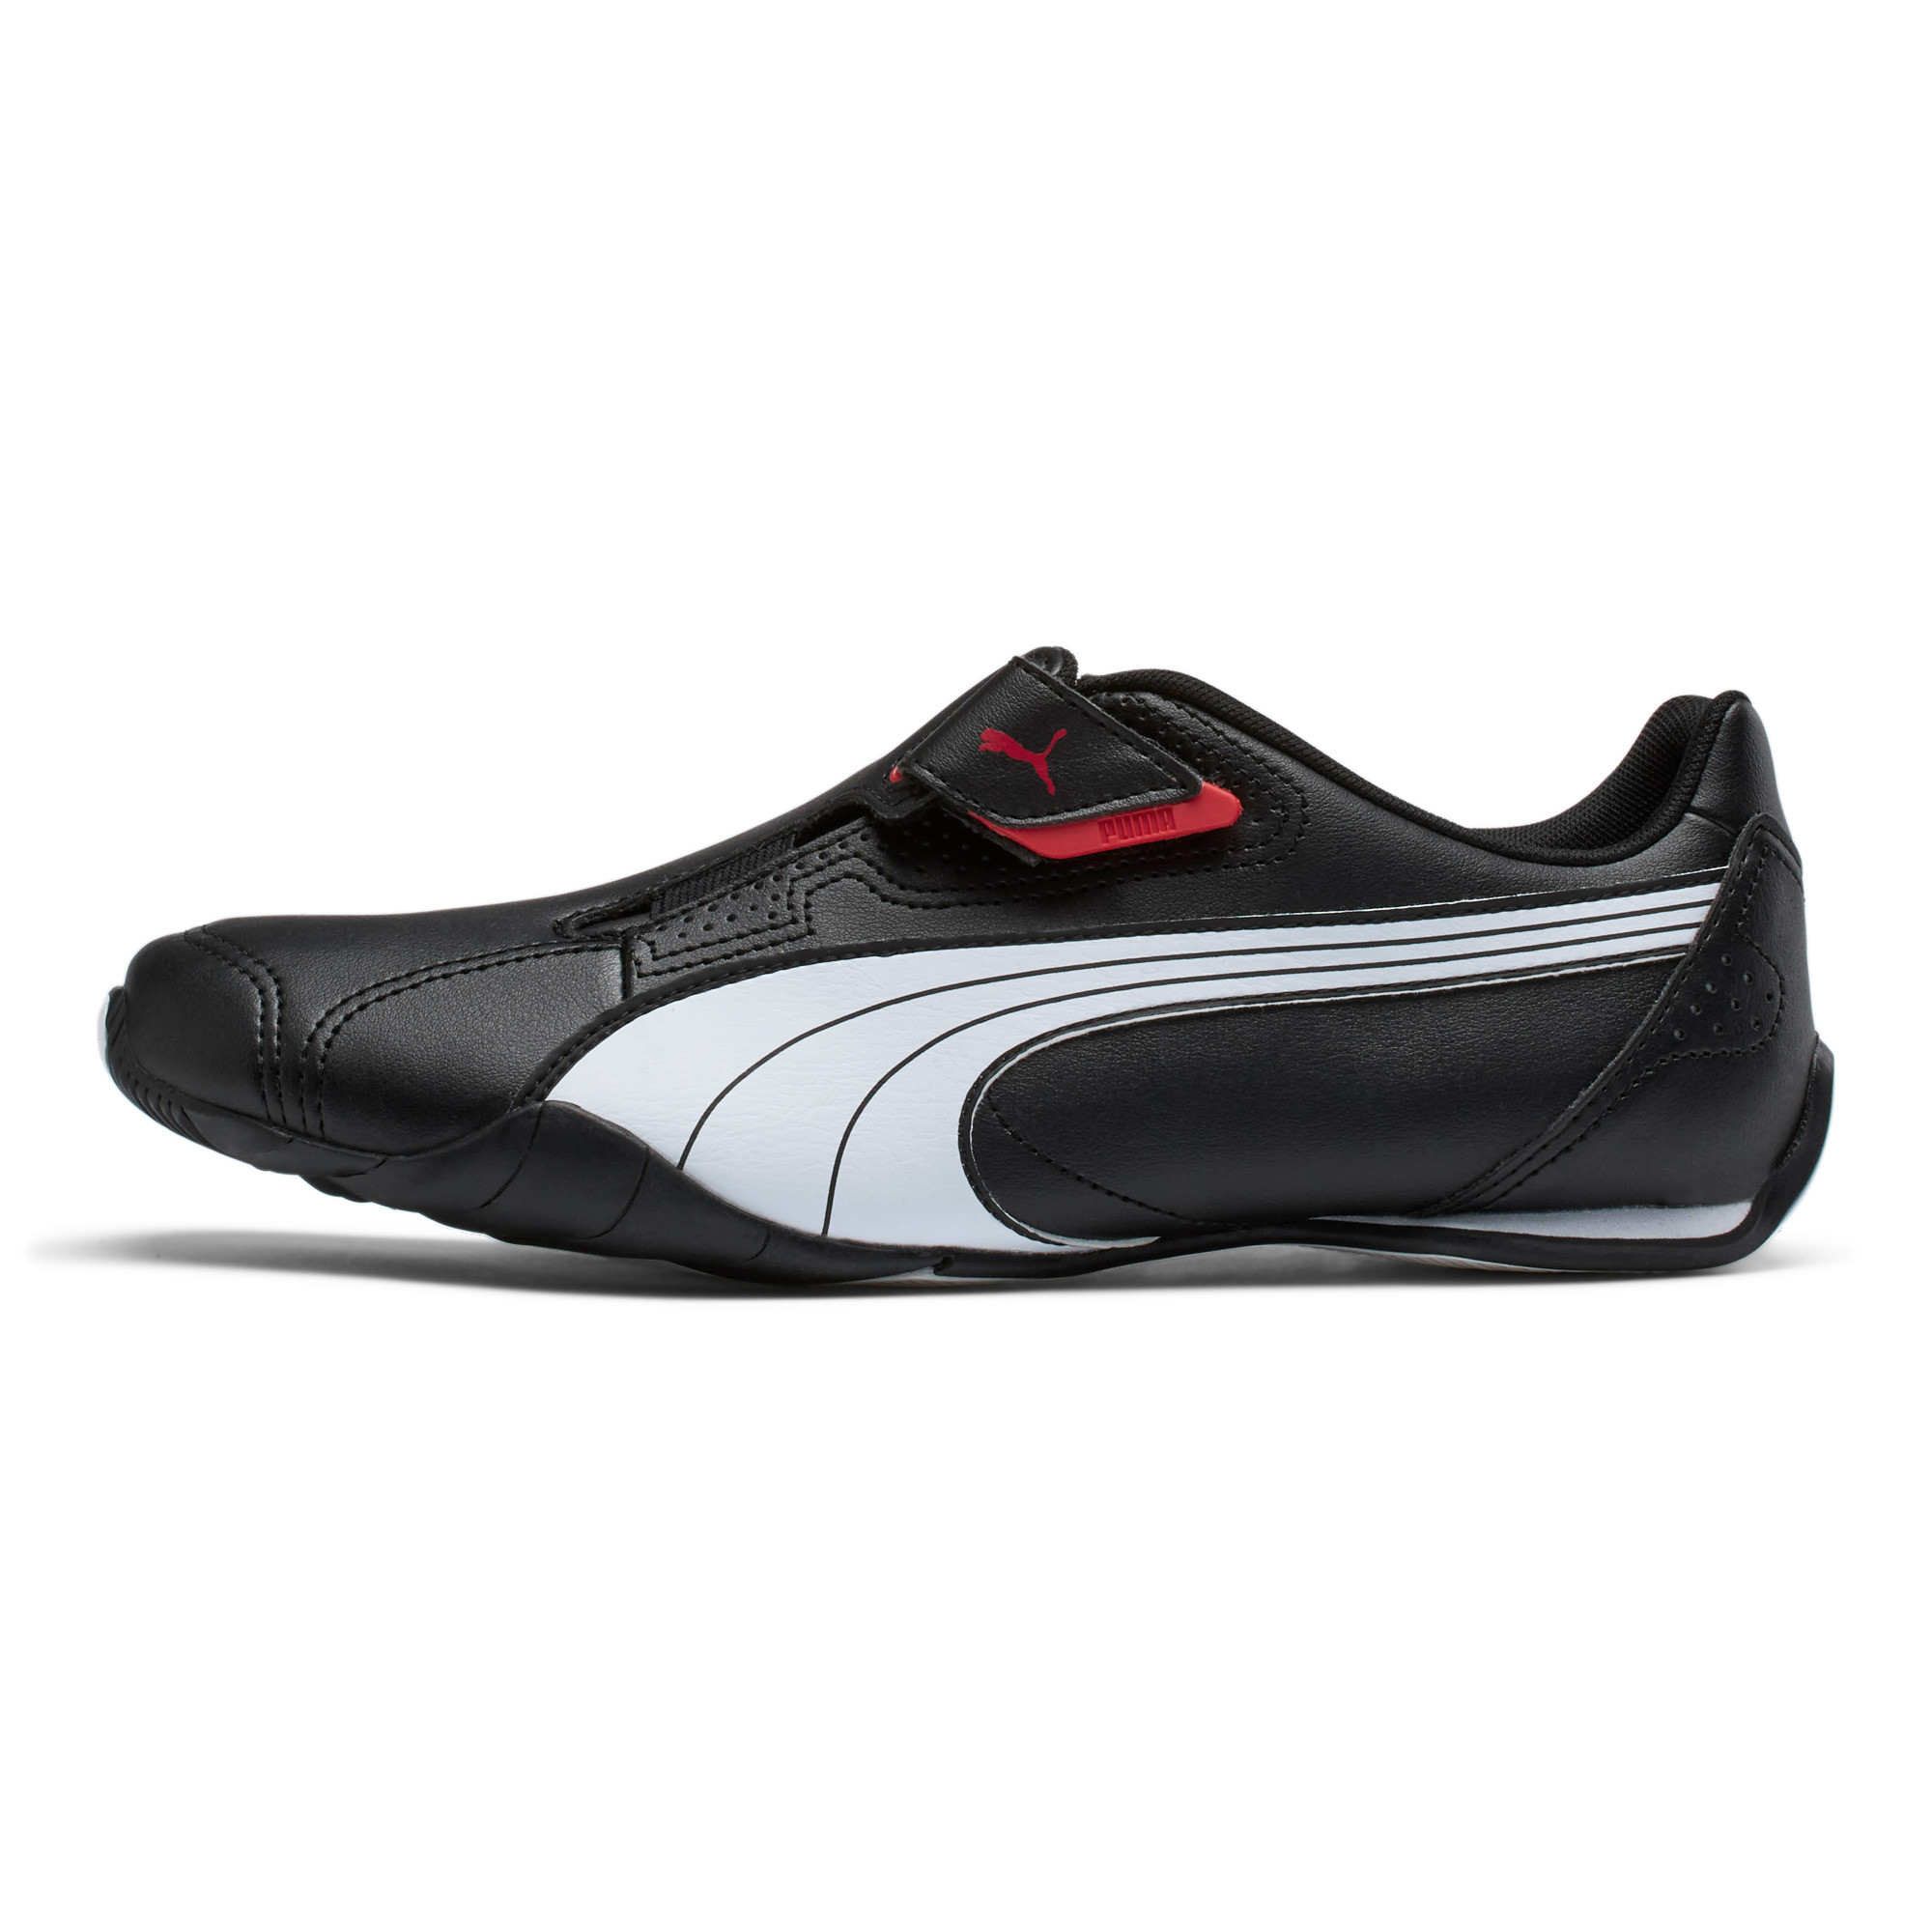 PUMA-Redon-Move-Men-039-s-Shoes-Men-Shoe-Sport-Shoe thumbnail 4